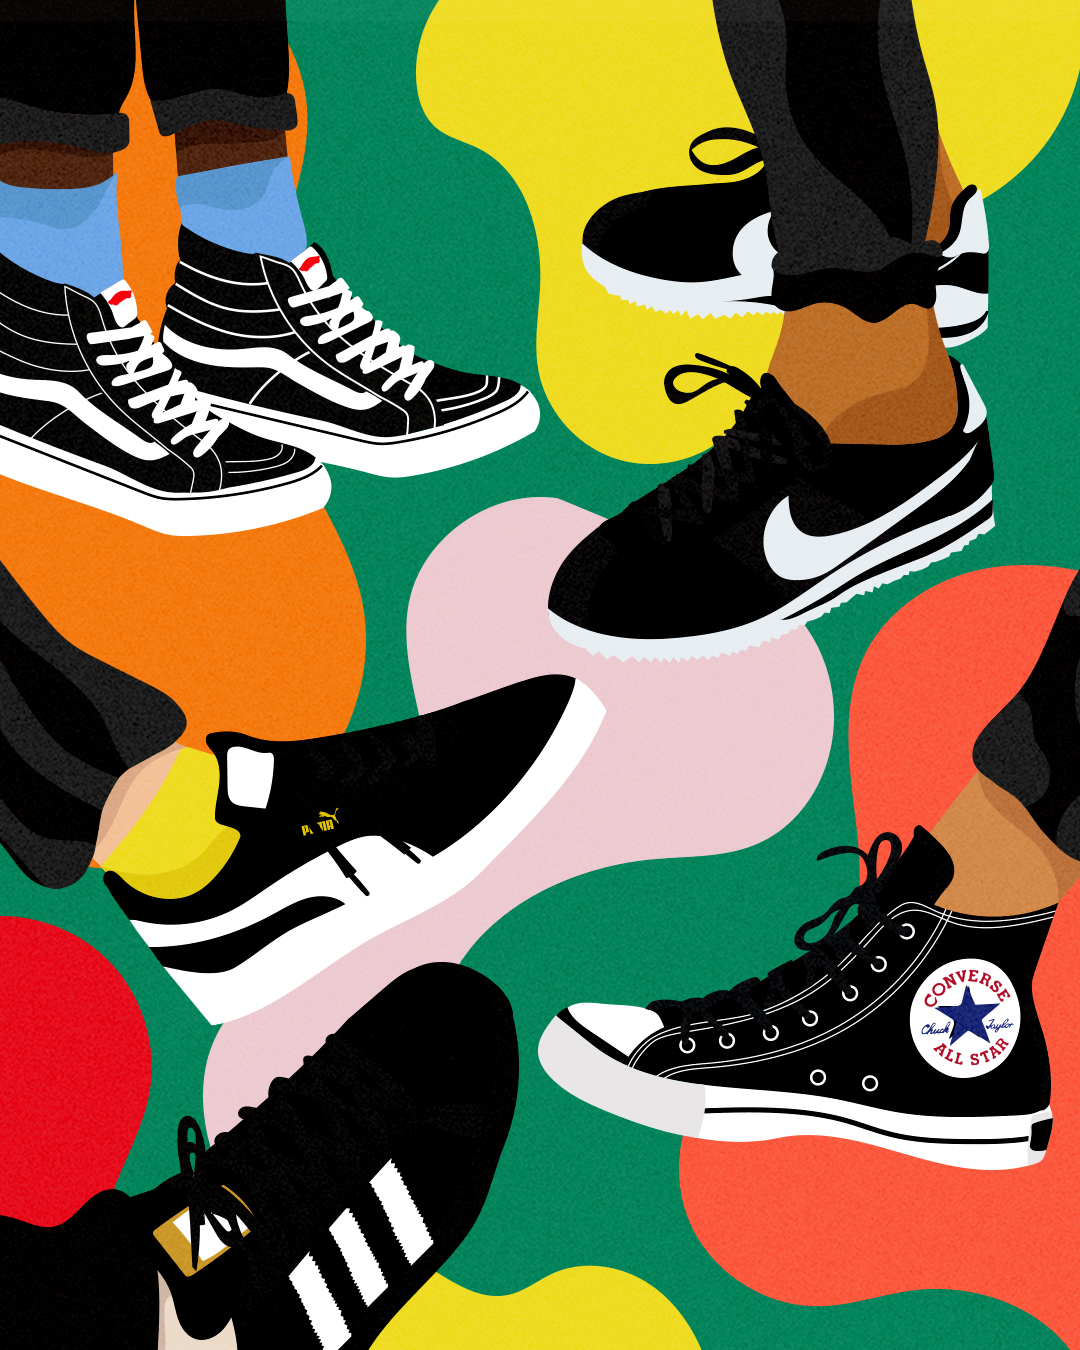 TheOnes_Illustration_Vans_v6a.jpg